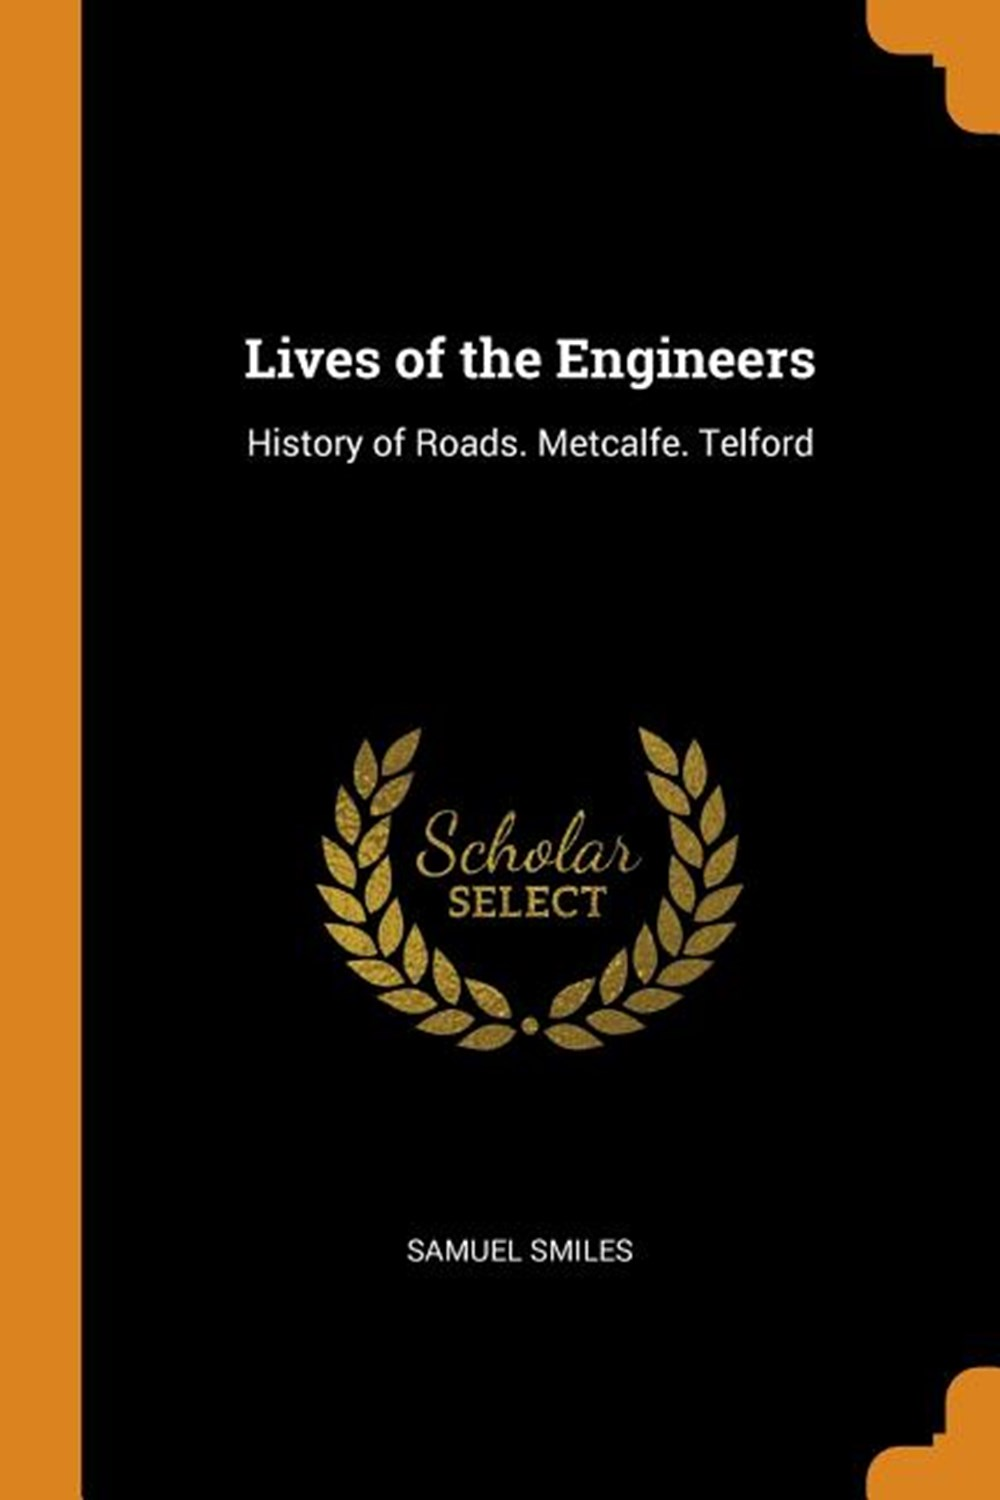 Lives of the Engineers History of Roads. Metcalfe. Telford